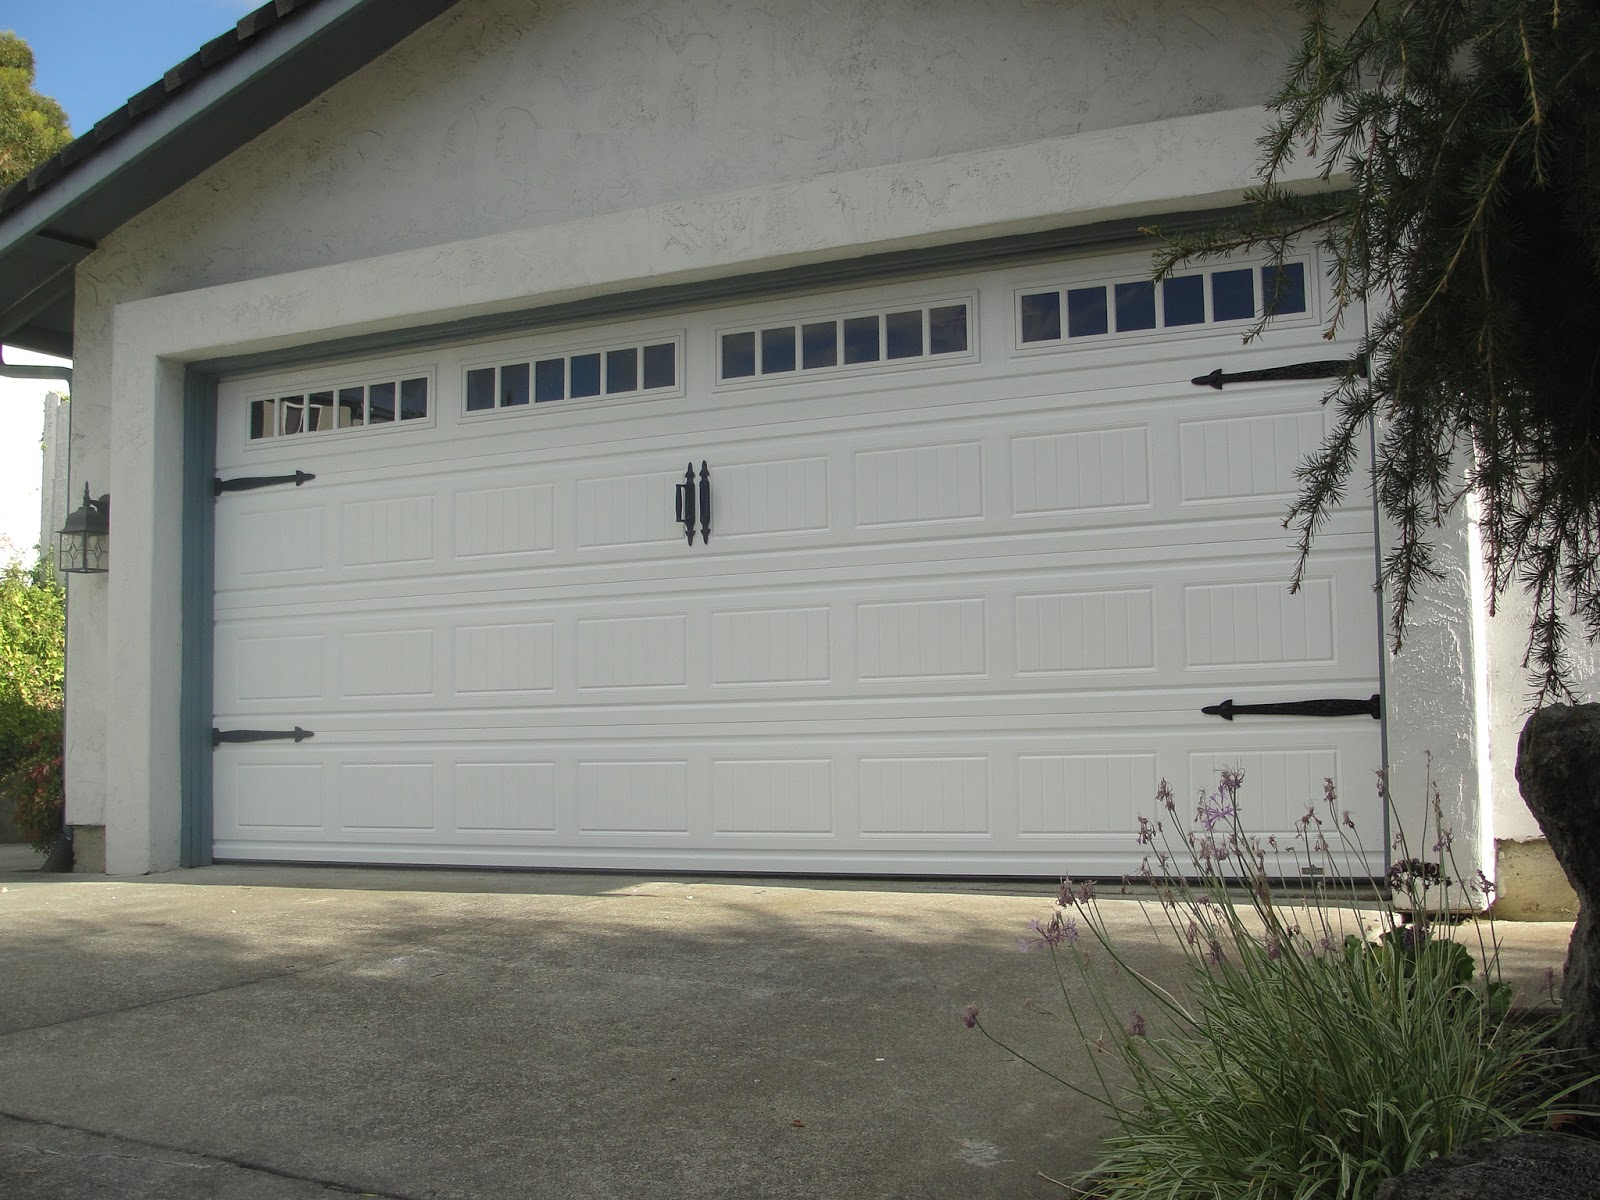 They Also Offer Other Garage Door Services Such As Garage Door Repair,  Installation, Garage Door Parts And Garage Door Openers. They Are Available  24/7!